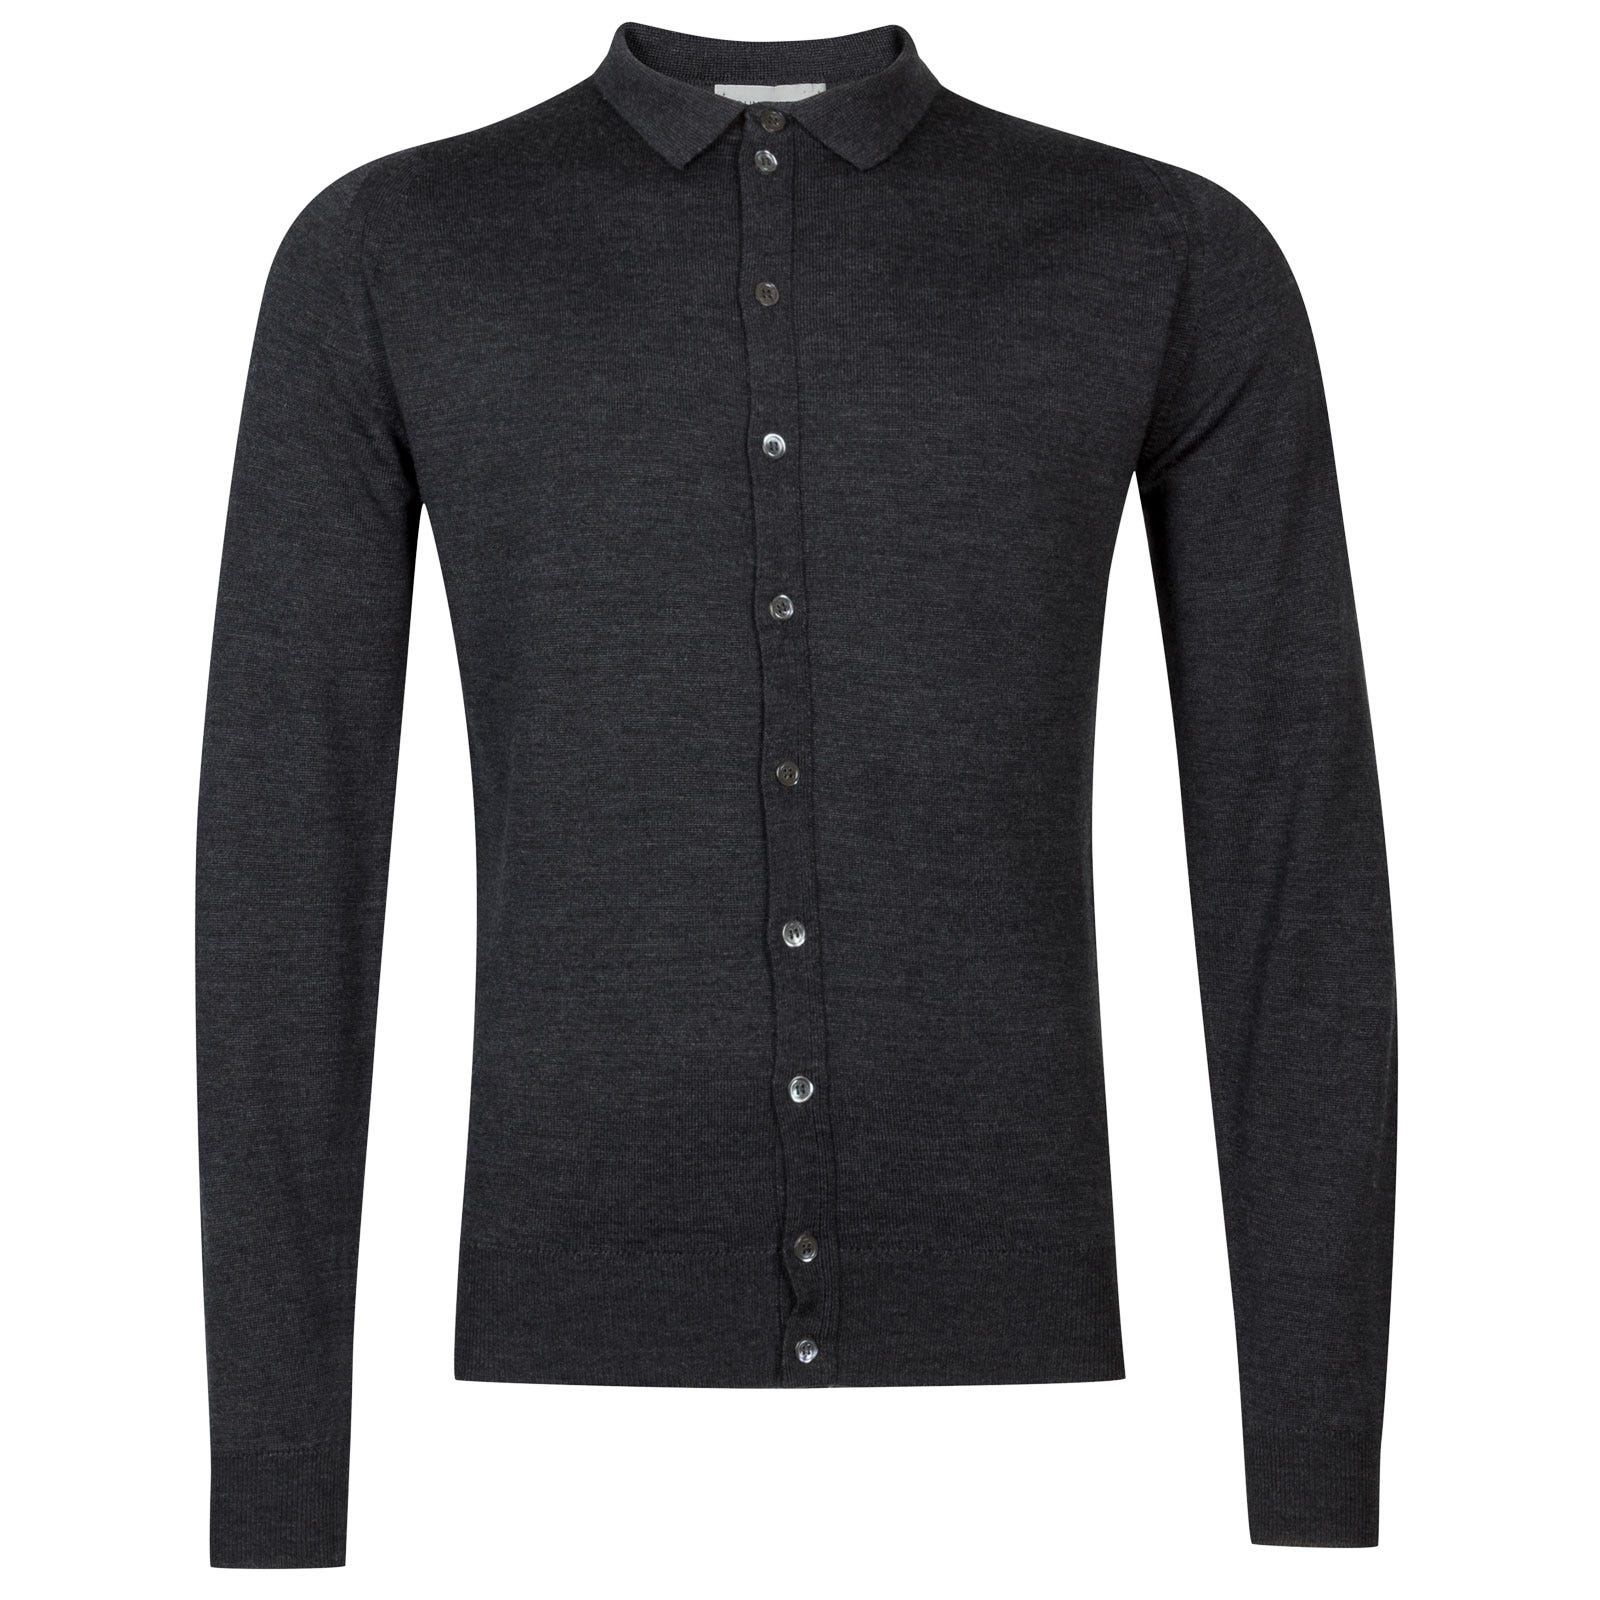 John Smedley parwish Merino Wool Shirt in Charcoal-XL